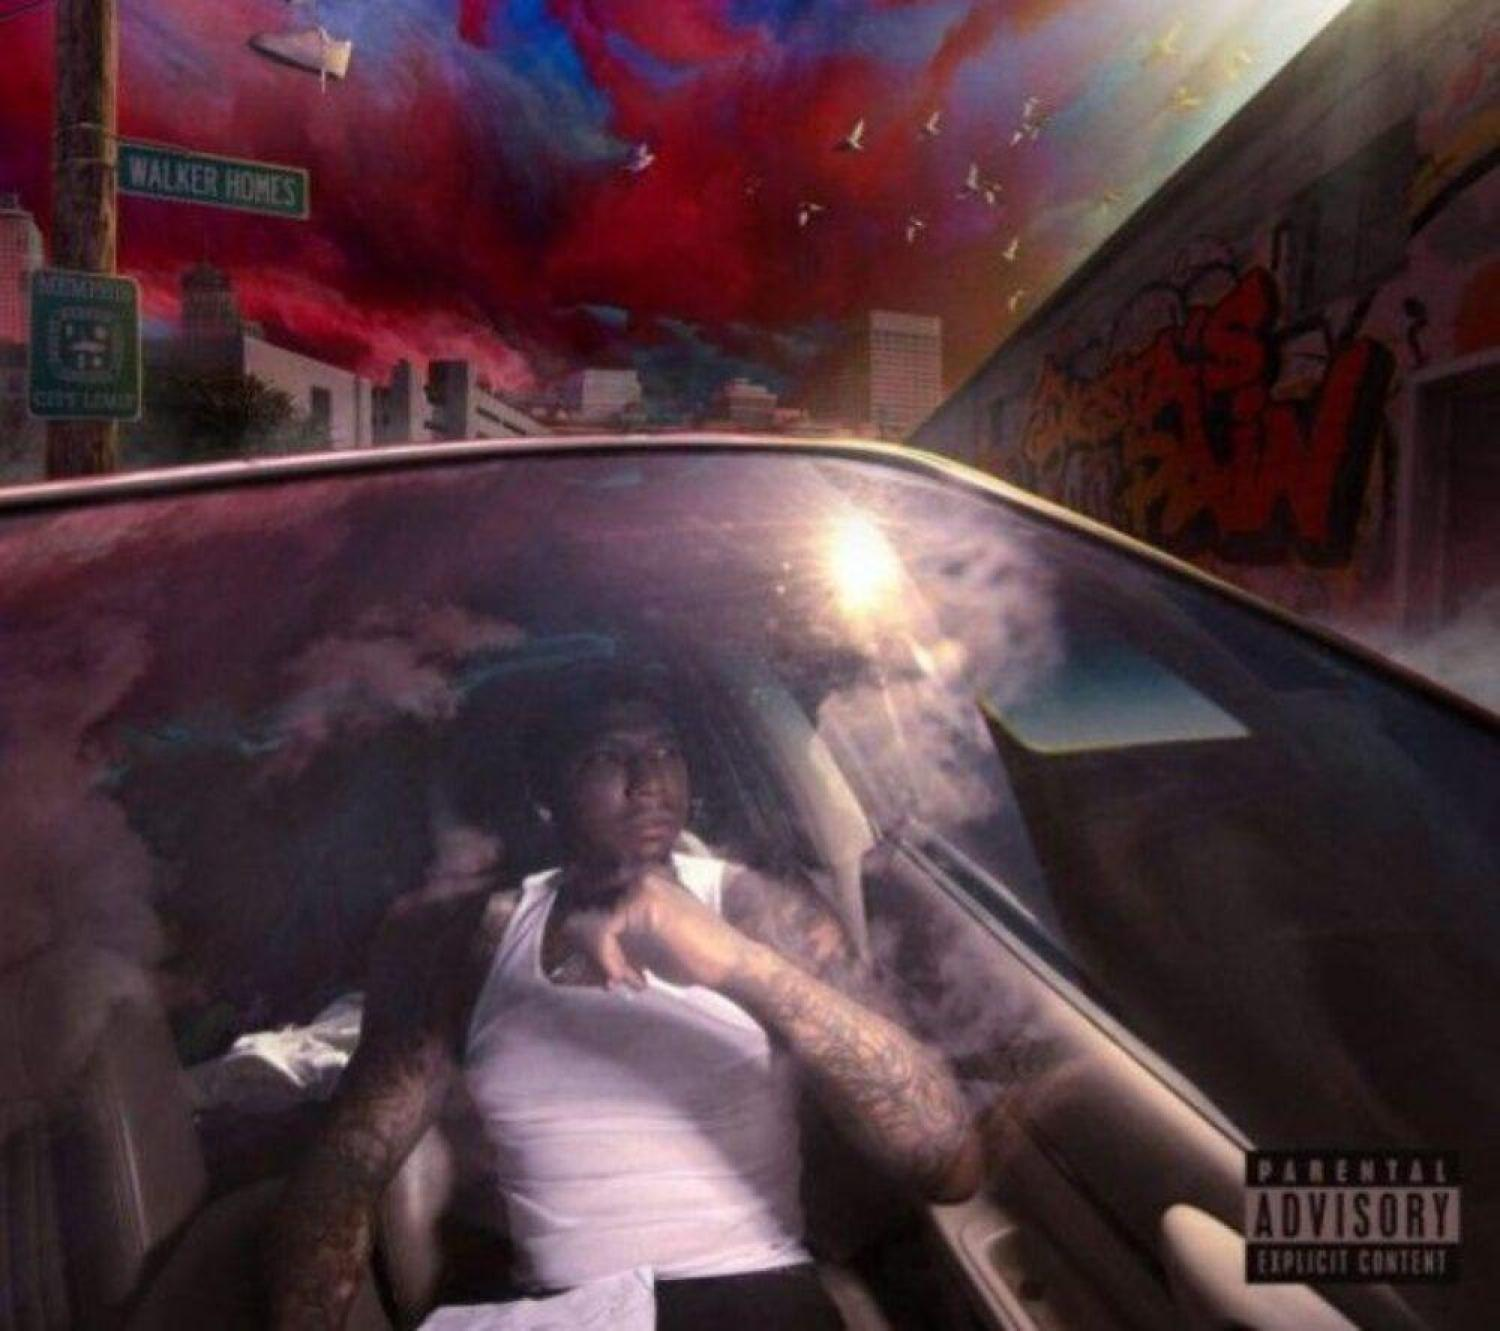 DOWNLOAD MP3: Moneybagg Yo – Hard for the Next AUDIO 320kbps